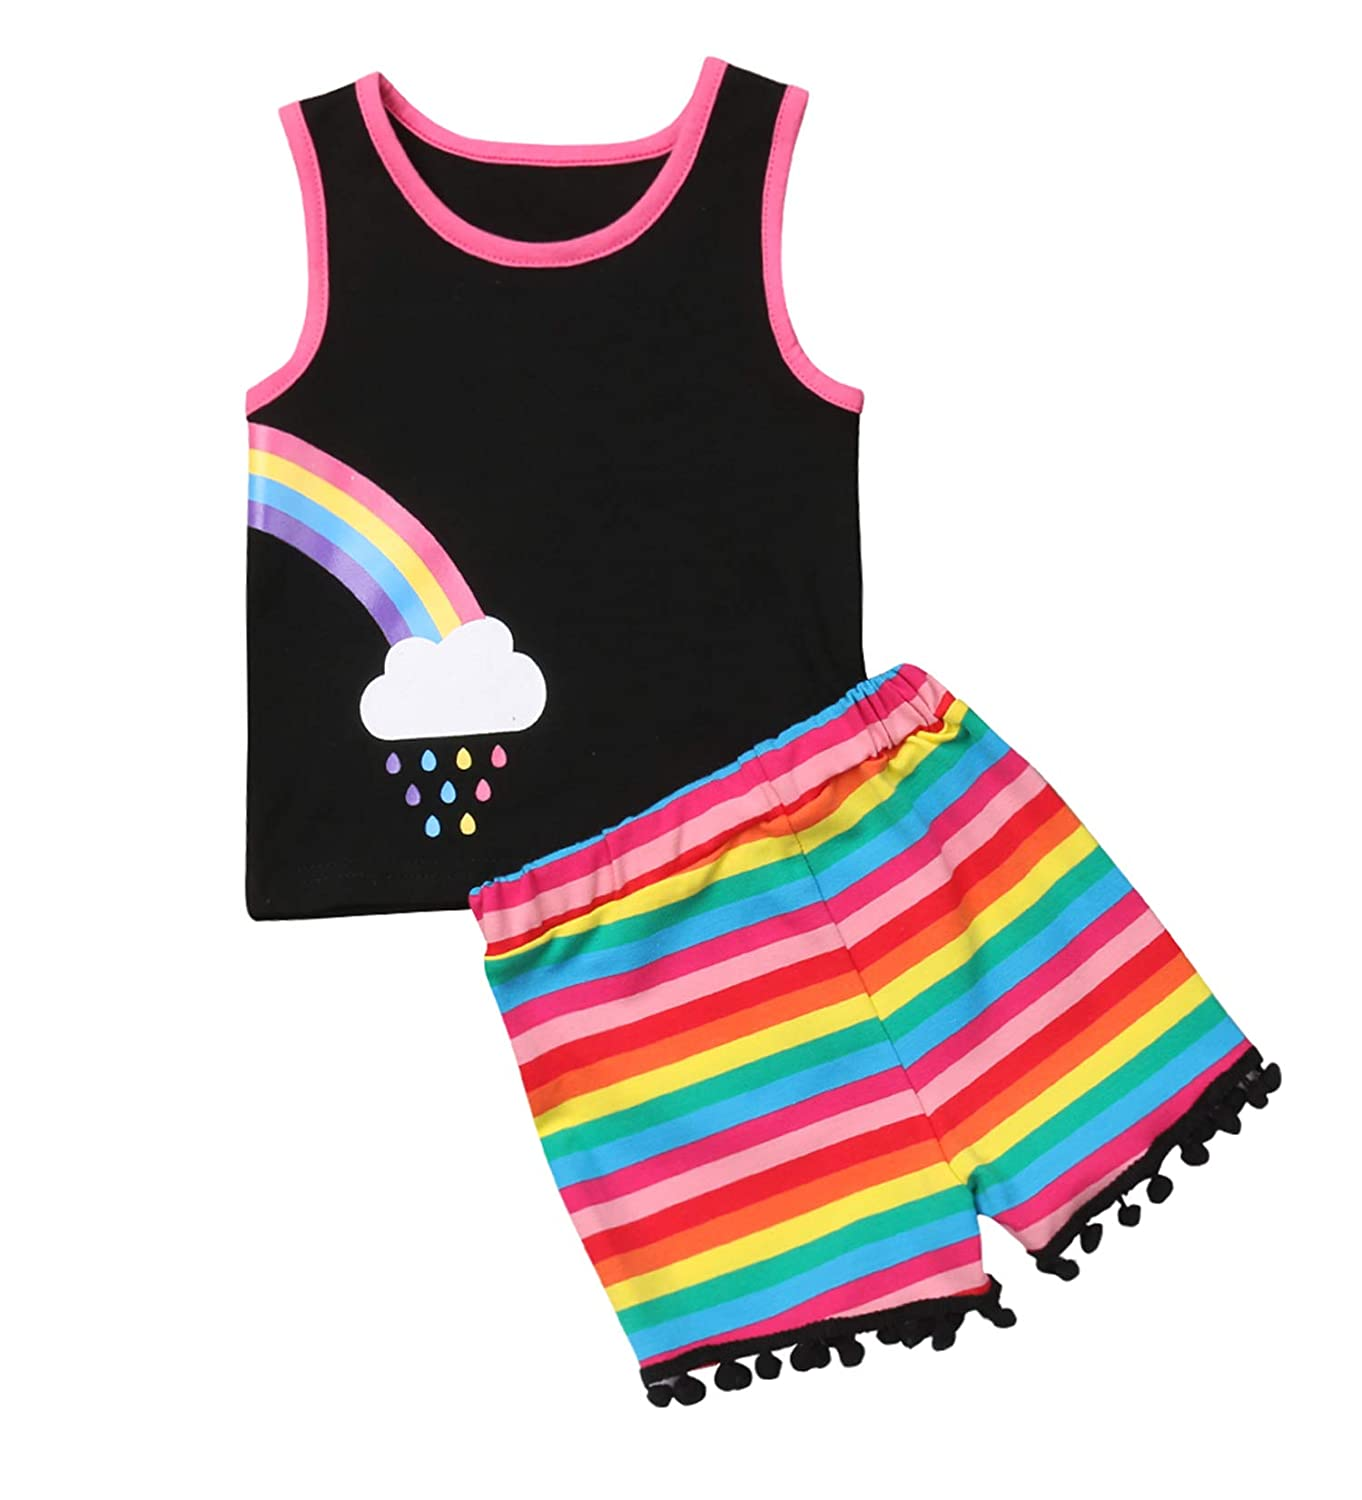 Sold Per 1 Set Styles I Love Baby Twin Girl Matching Rainbow Tank Top with Pom Pom Shorts 2pcs Best Friend Inspired Outfit